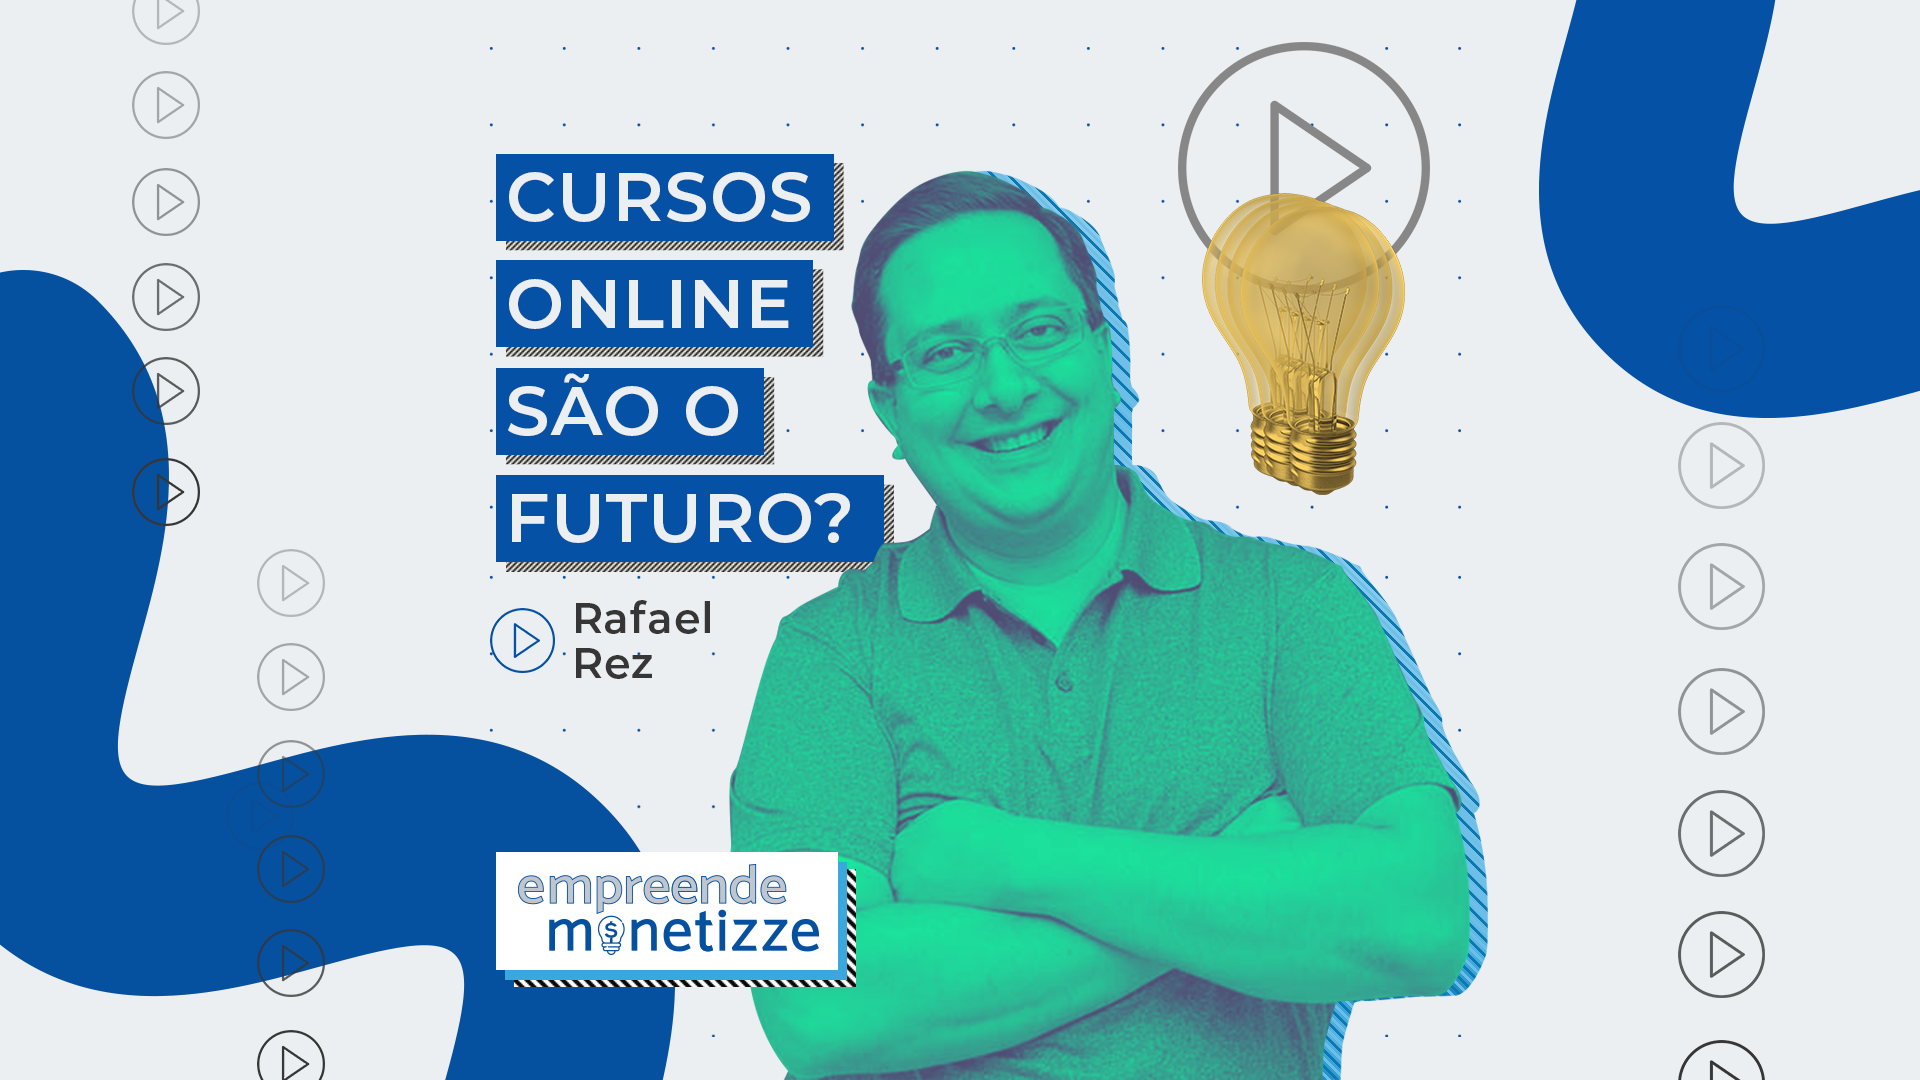 Palestra do Rafaeel Rez no Empreende Monetizze